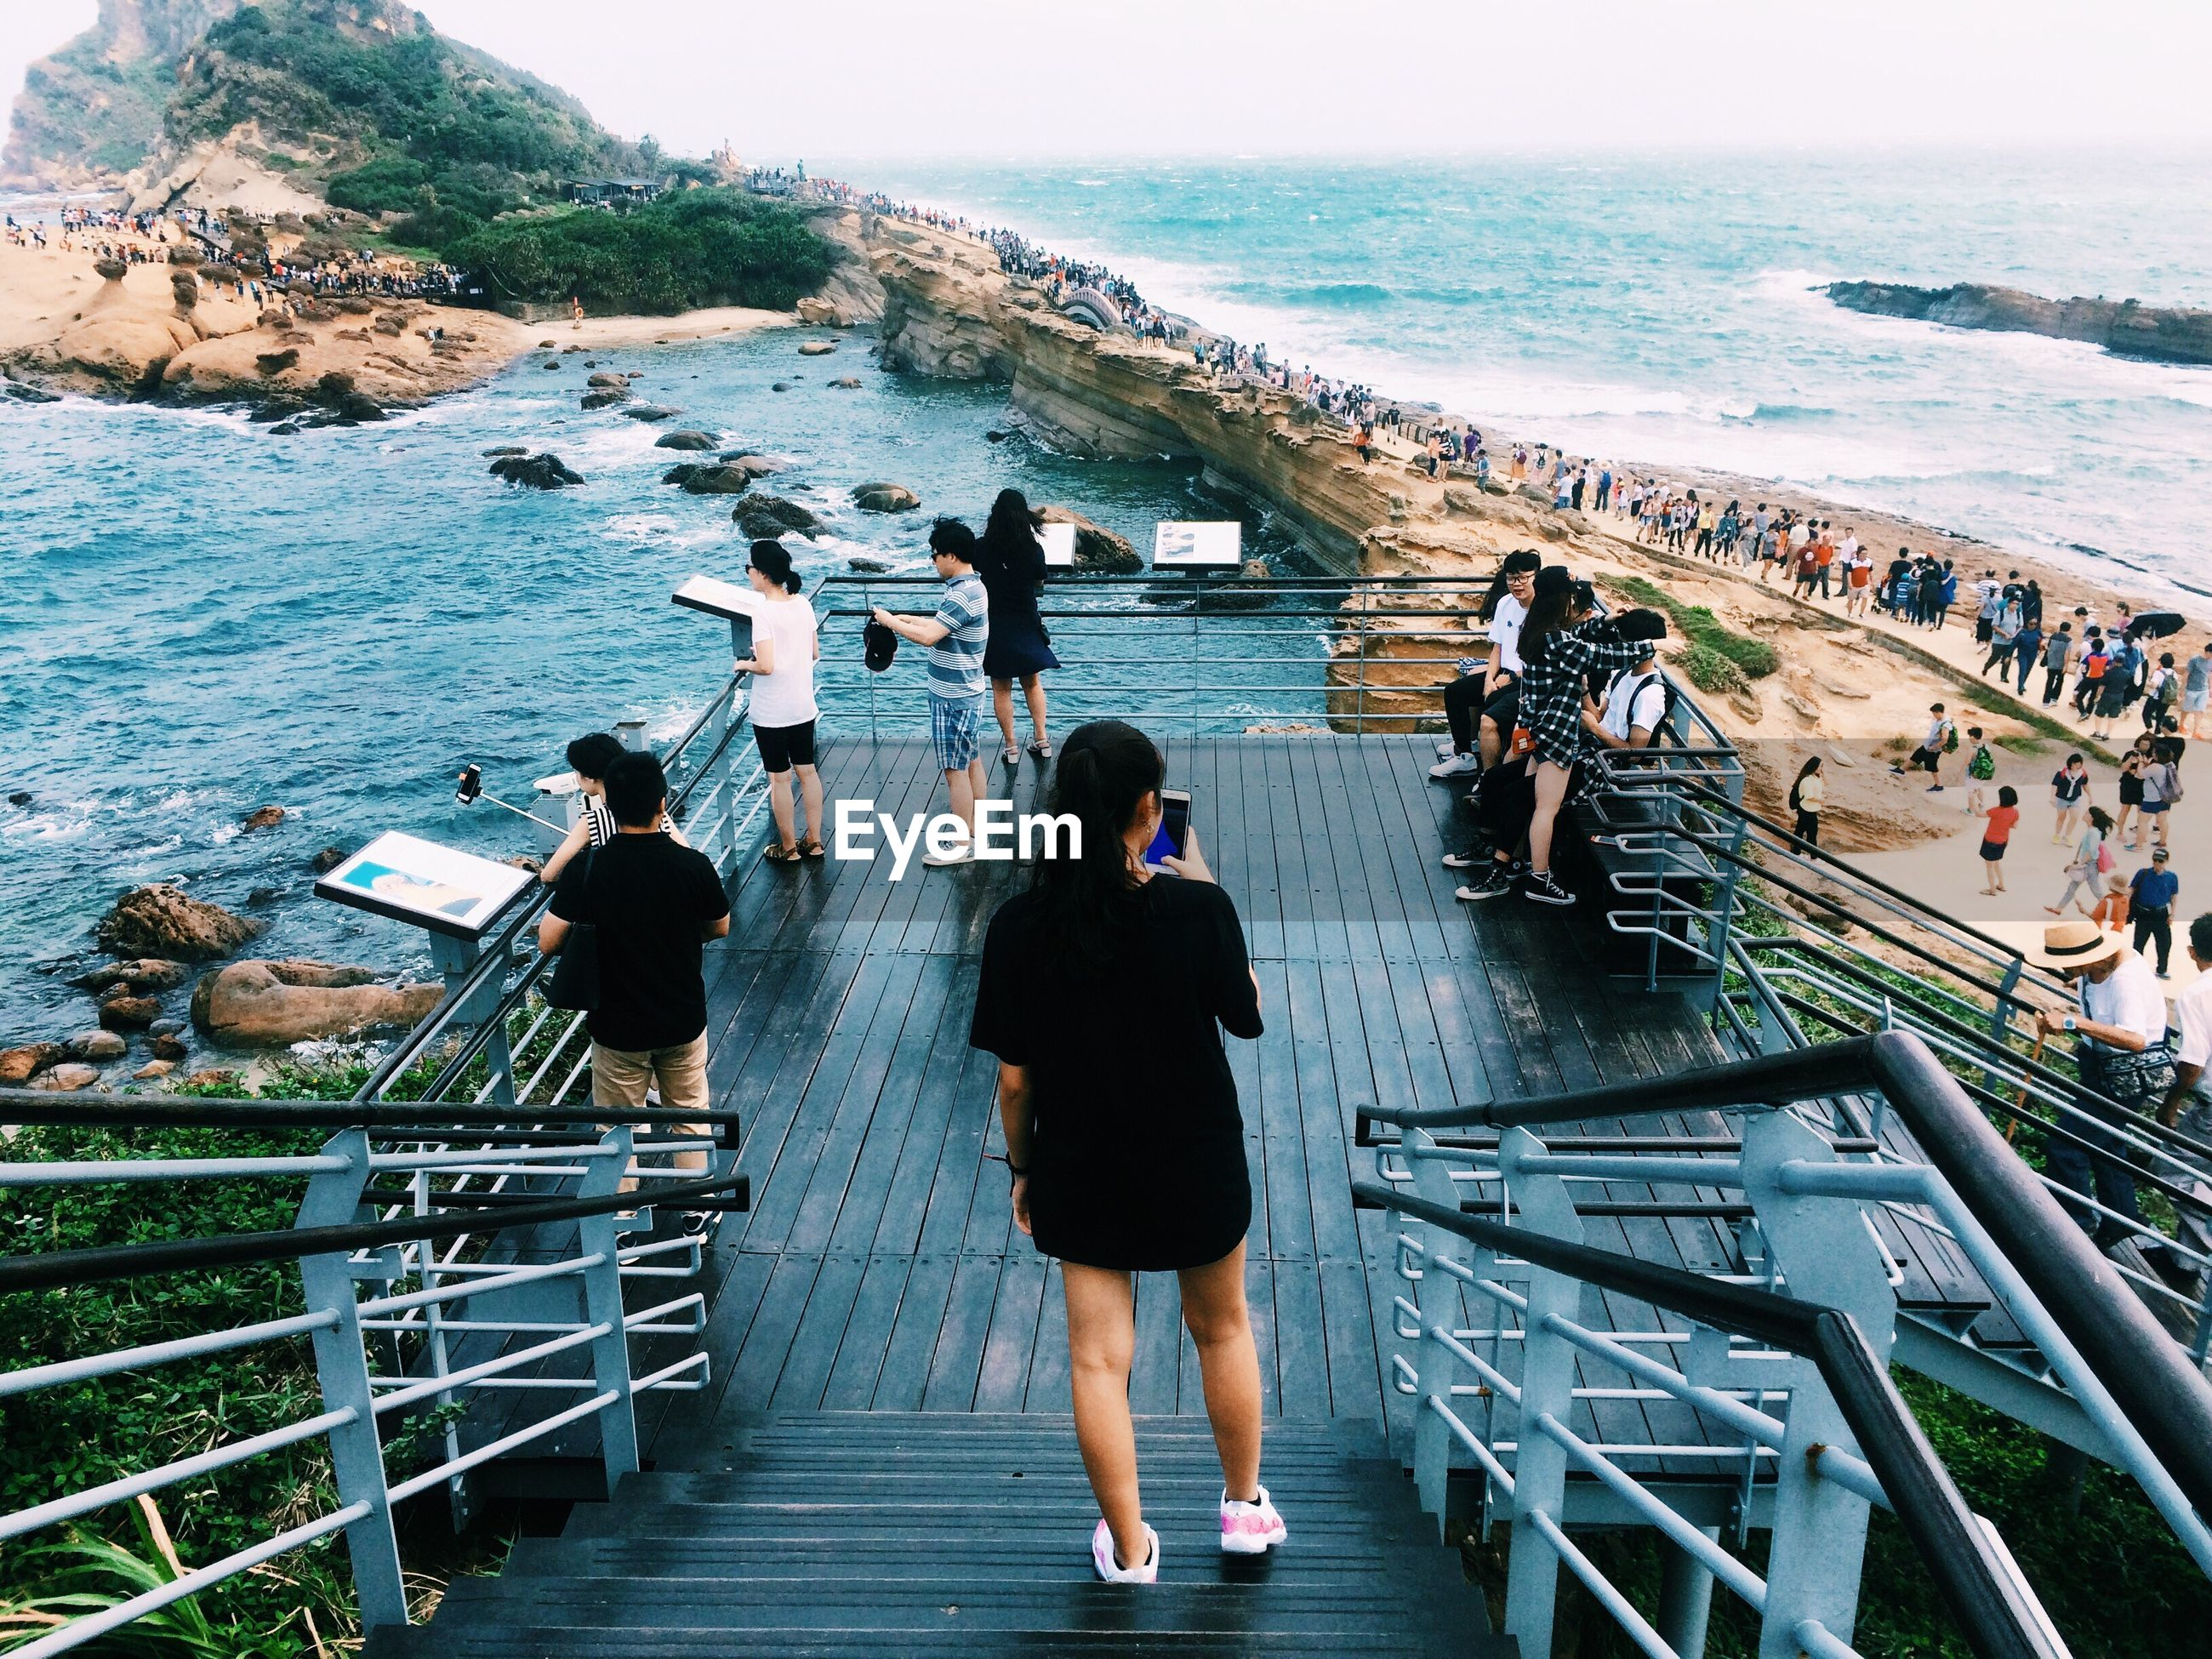 sea, real people, water, railing, lifestyles, horizon over water, high angle view, leisure activity, large group of people, women, day, rear view, men, standing, steps, nature, outdoors, full length, scenics, vacations, beauty in nature, technology, sky, people